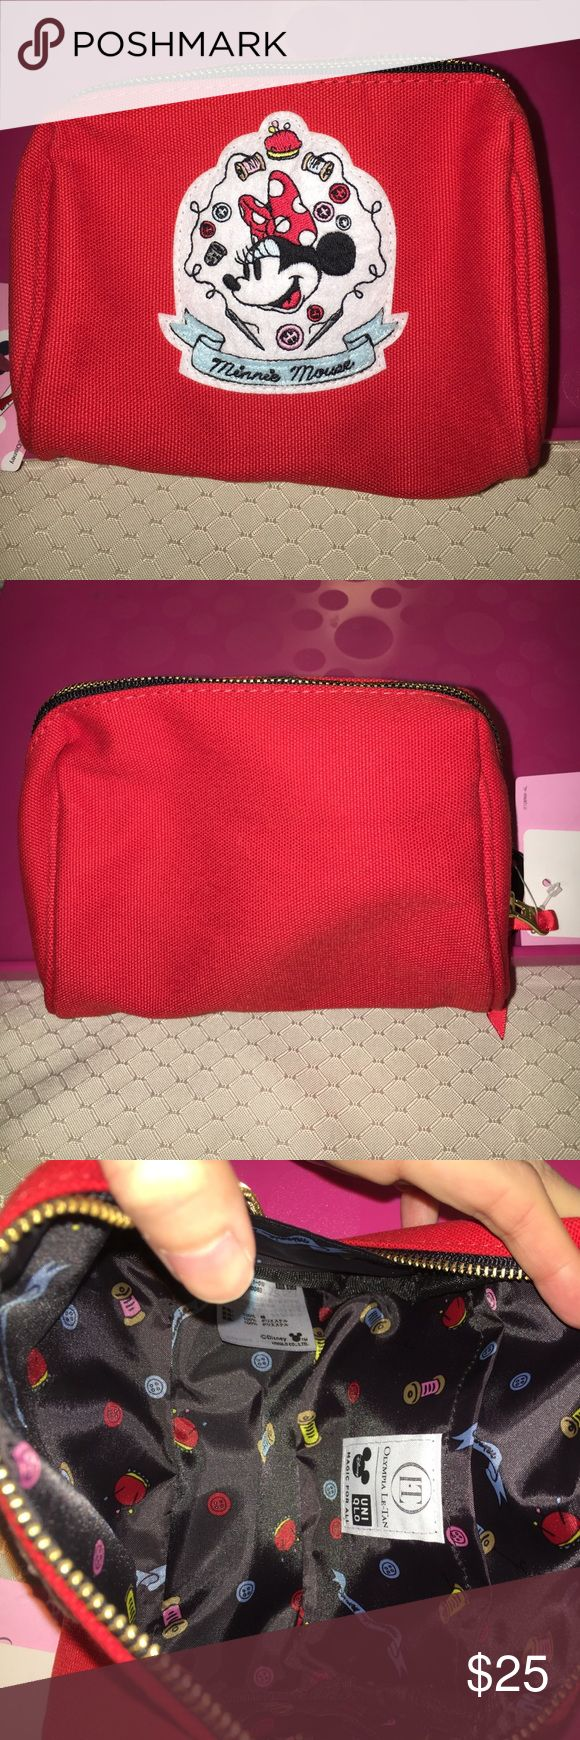 🍡🍄*Rare* Uniqlo Minnie Mouse makeup bag Purchased in Japan. Brand new with tag. 100% polyester. H10cm, W14.5cm, D8.5cm Uniqlo Bags Cosmetic Bags & Cases